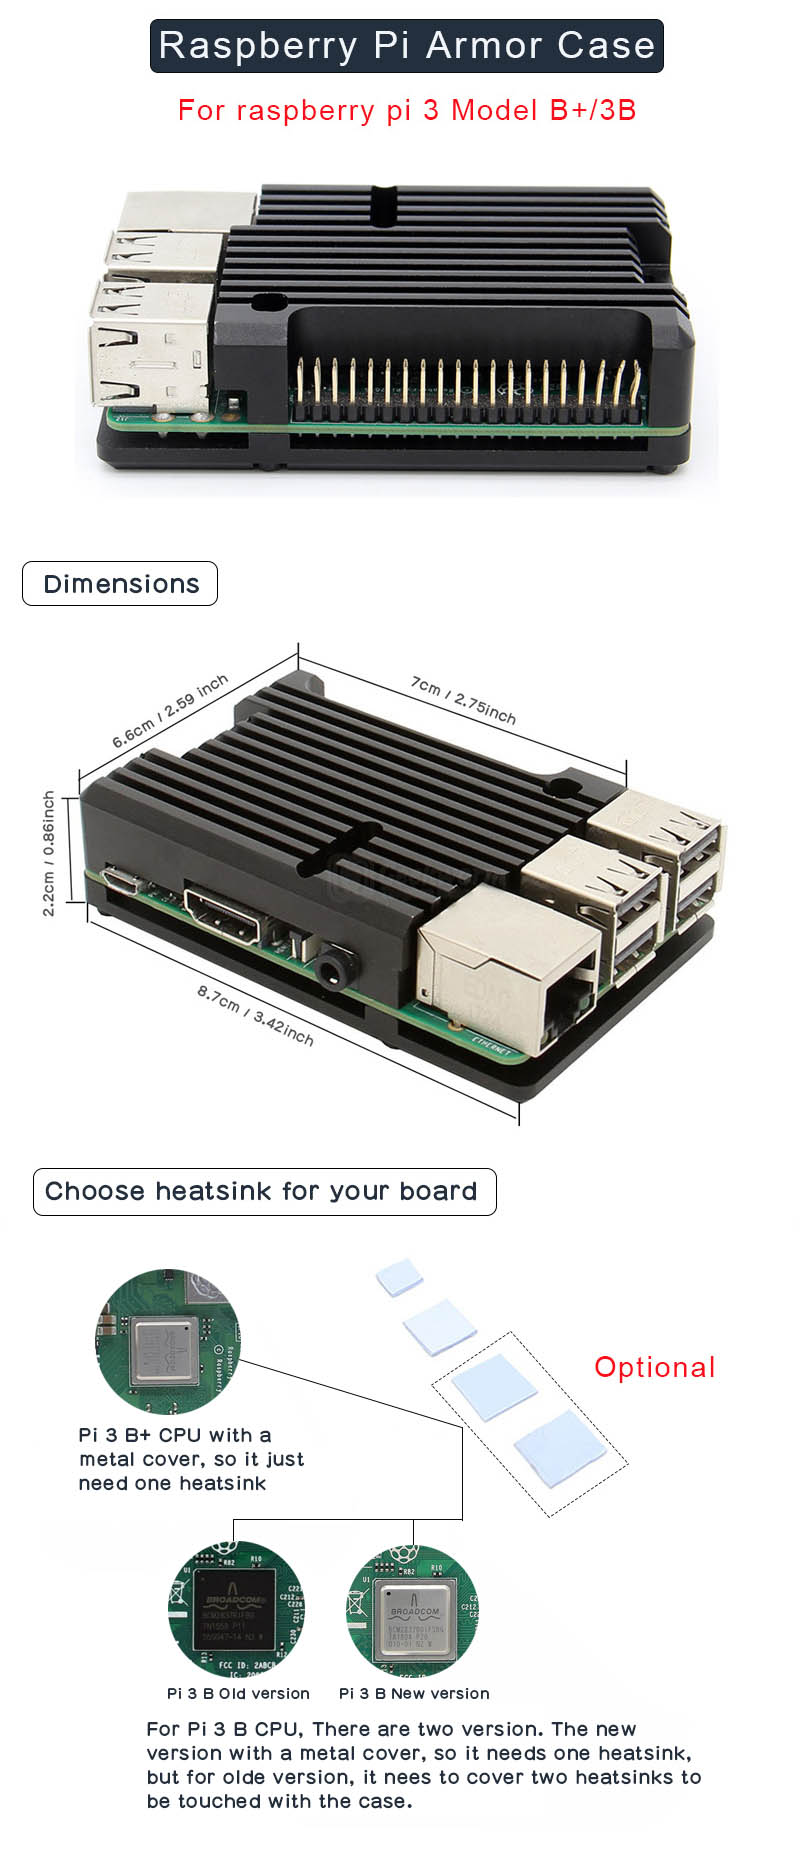 Raspberry Pi Armor case installation guide